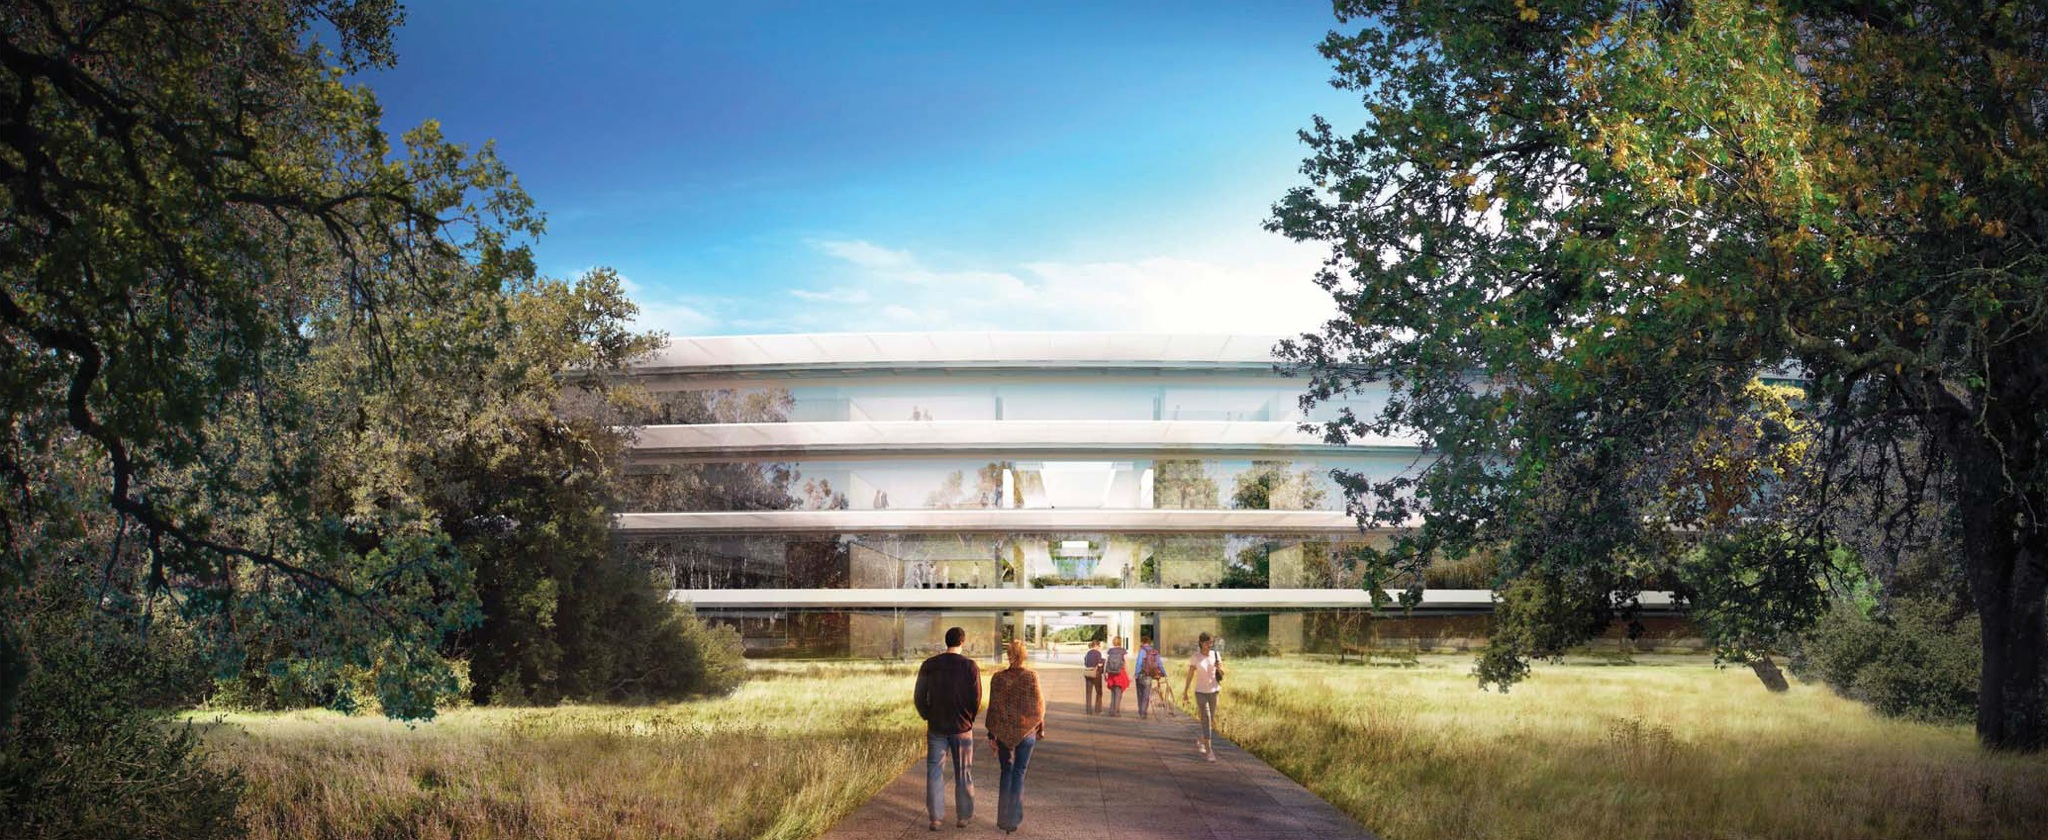 Apple Campus 2 (Rendering 005, Retina-optimized)